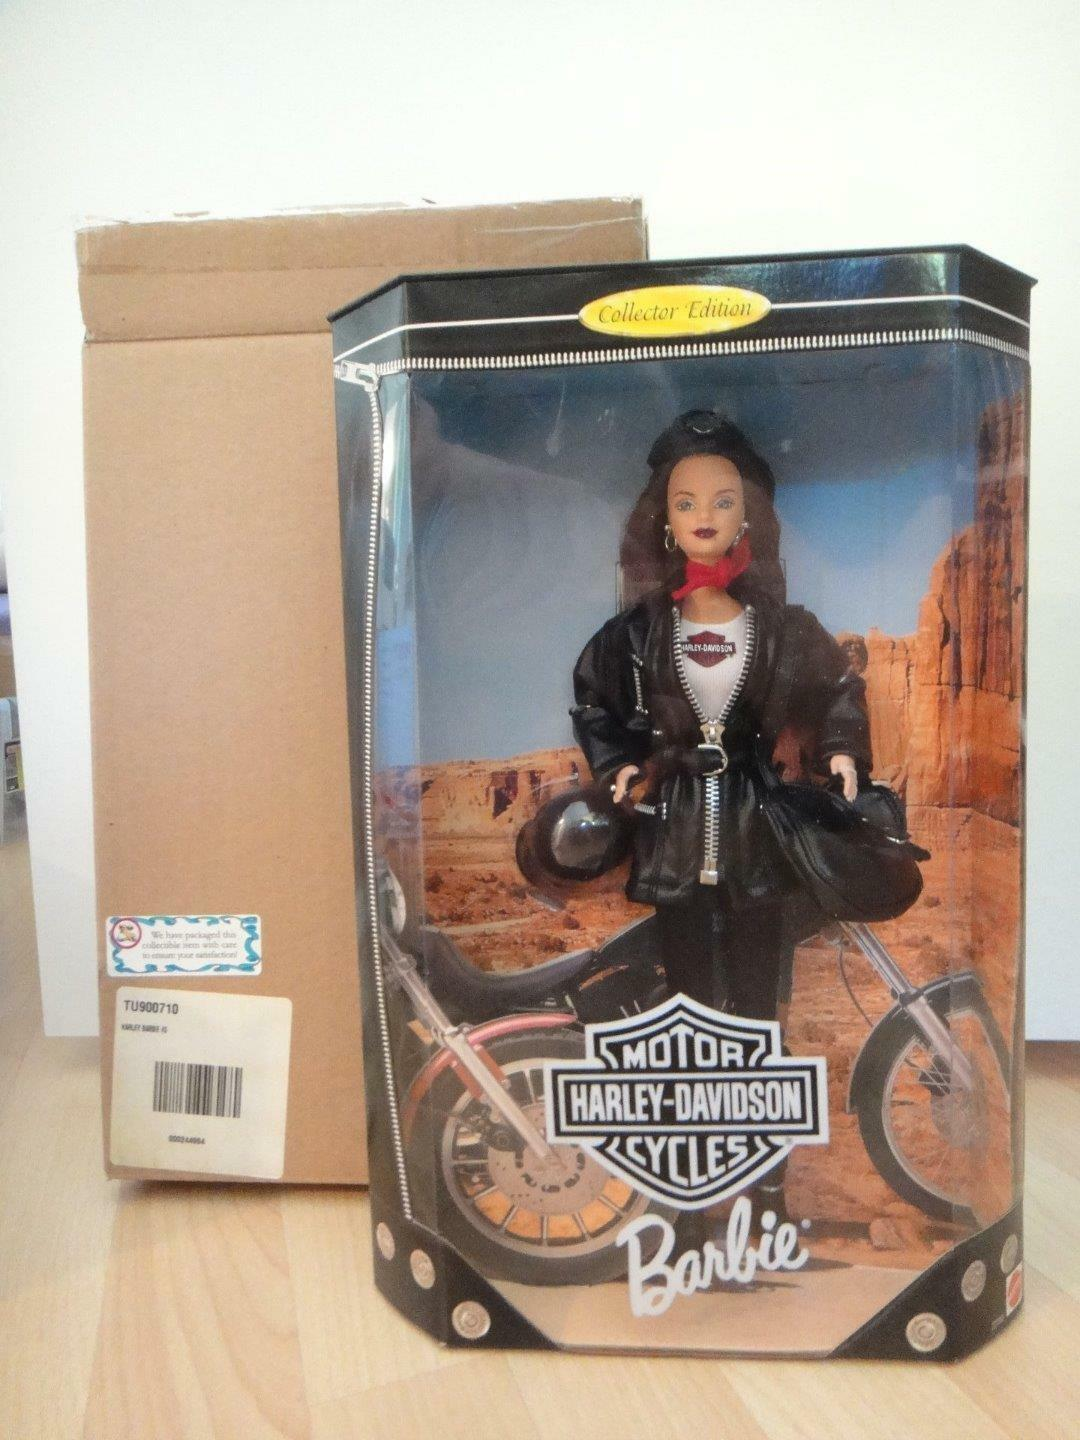 Primary image for Collector Harley Davidson Barbie Doll #3 w/Shipper Mattel 22256  MIB